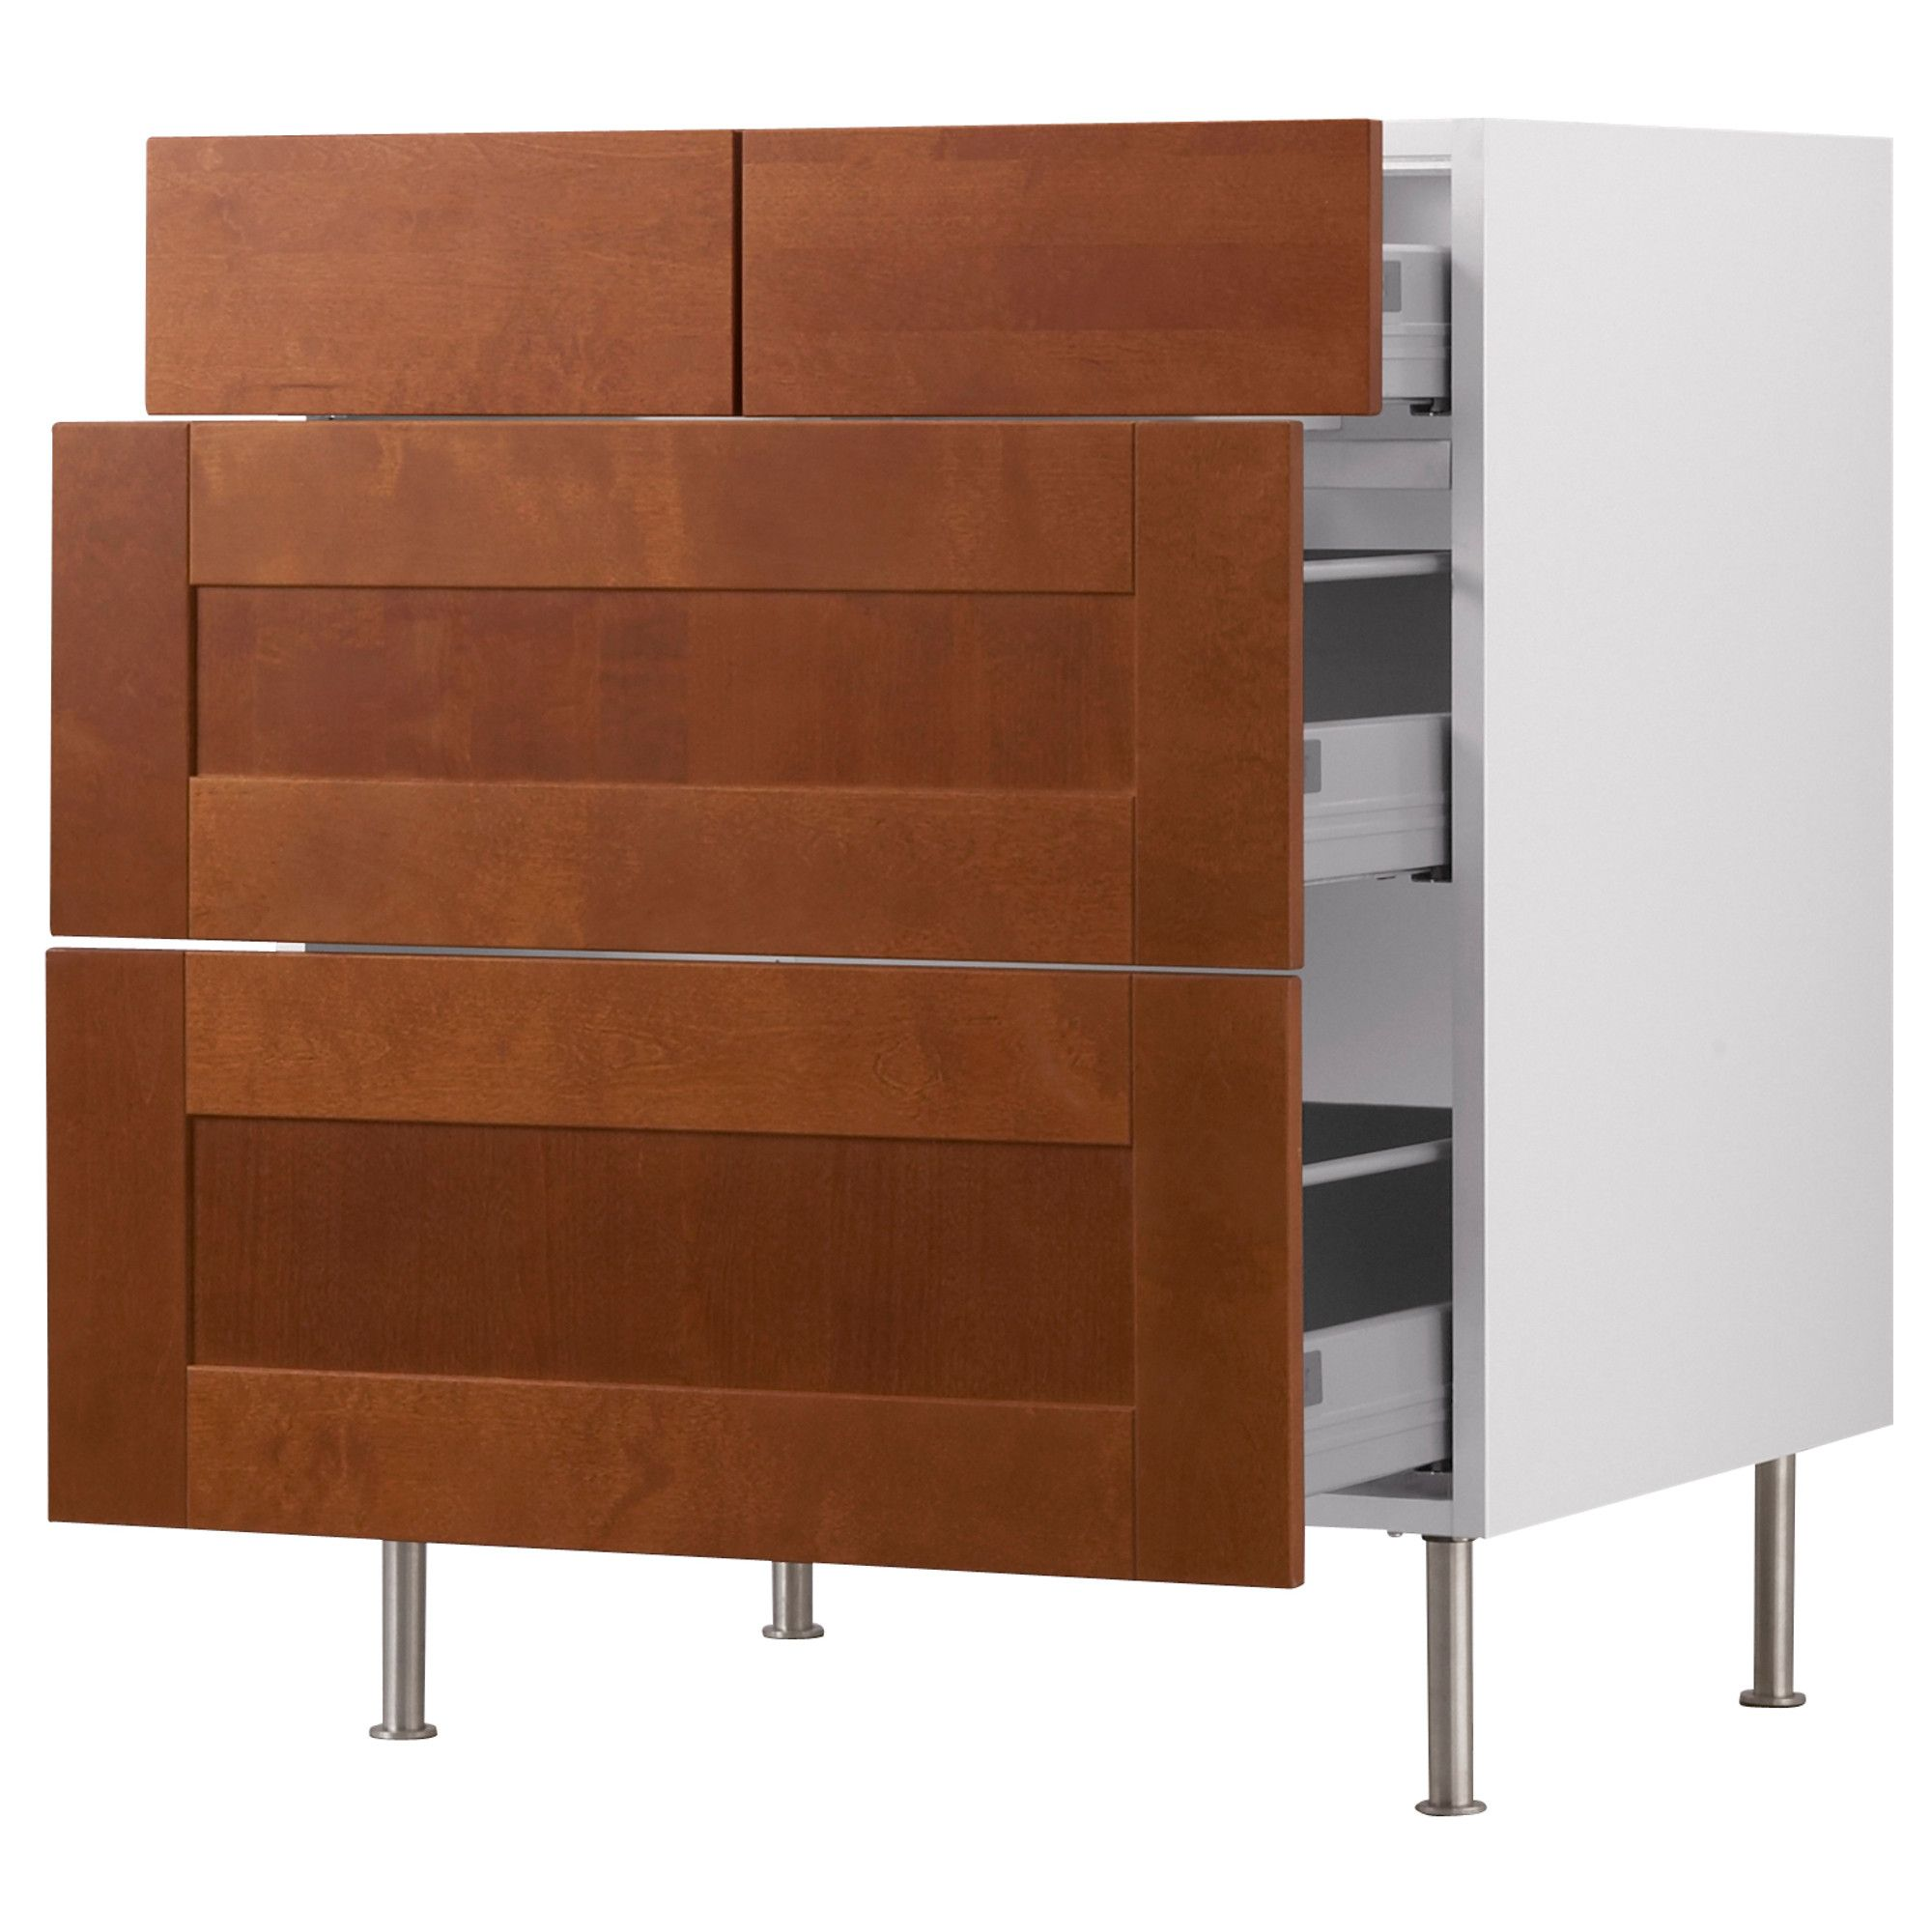 Masters Kitchen Base Cabinets 30 Quot Wide Akurum Base Cabinet With 2 432 Drawers Ikea Built